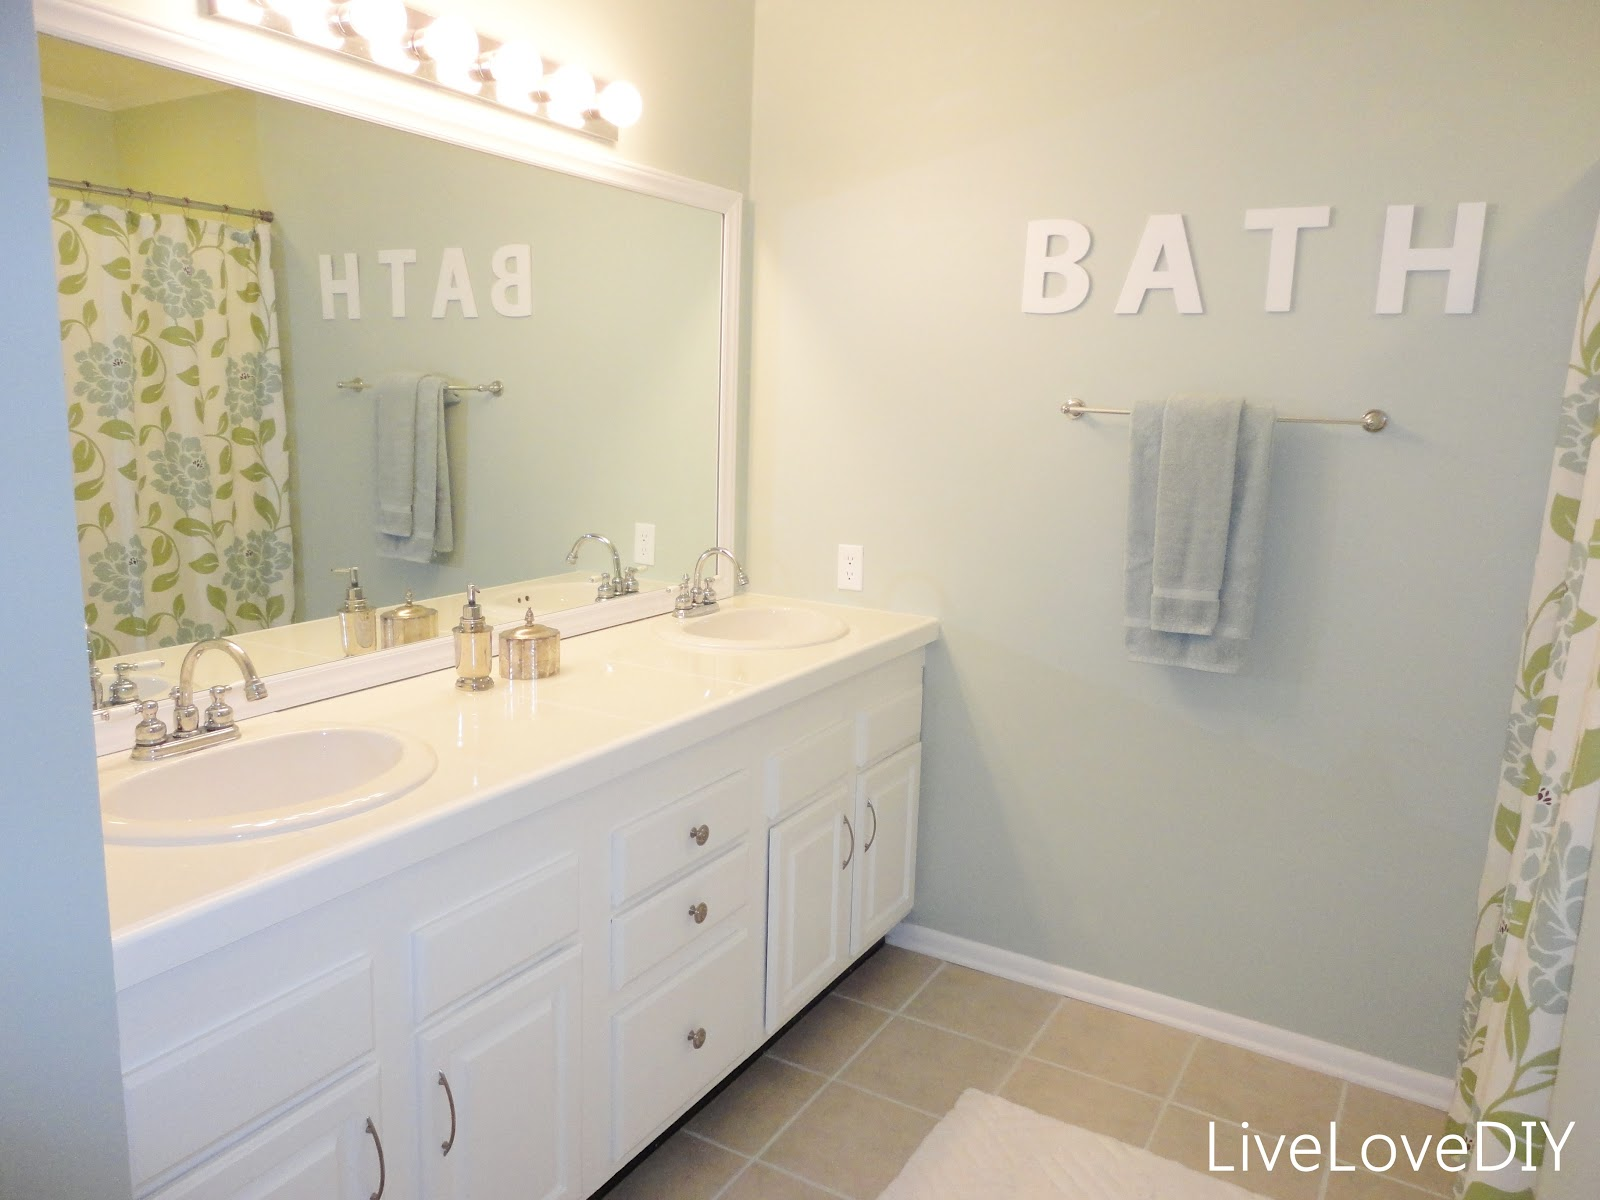 LiveLoveDIY Painting Trim Walls What You Need To Know - Valspar bathroom paint